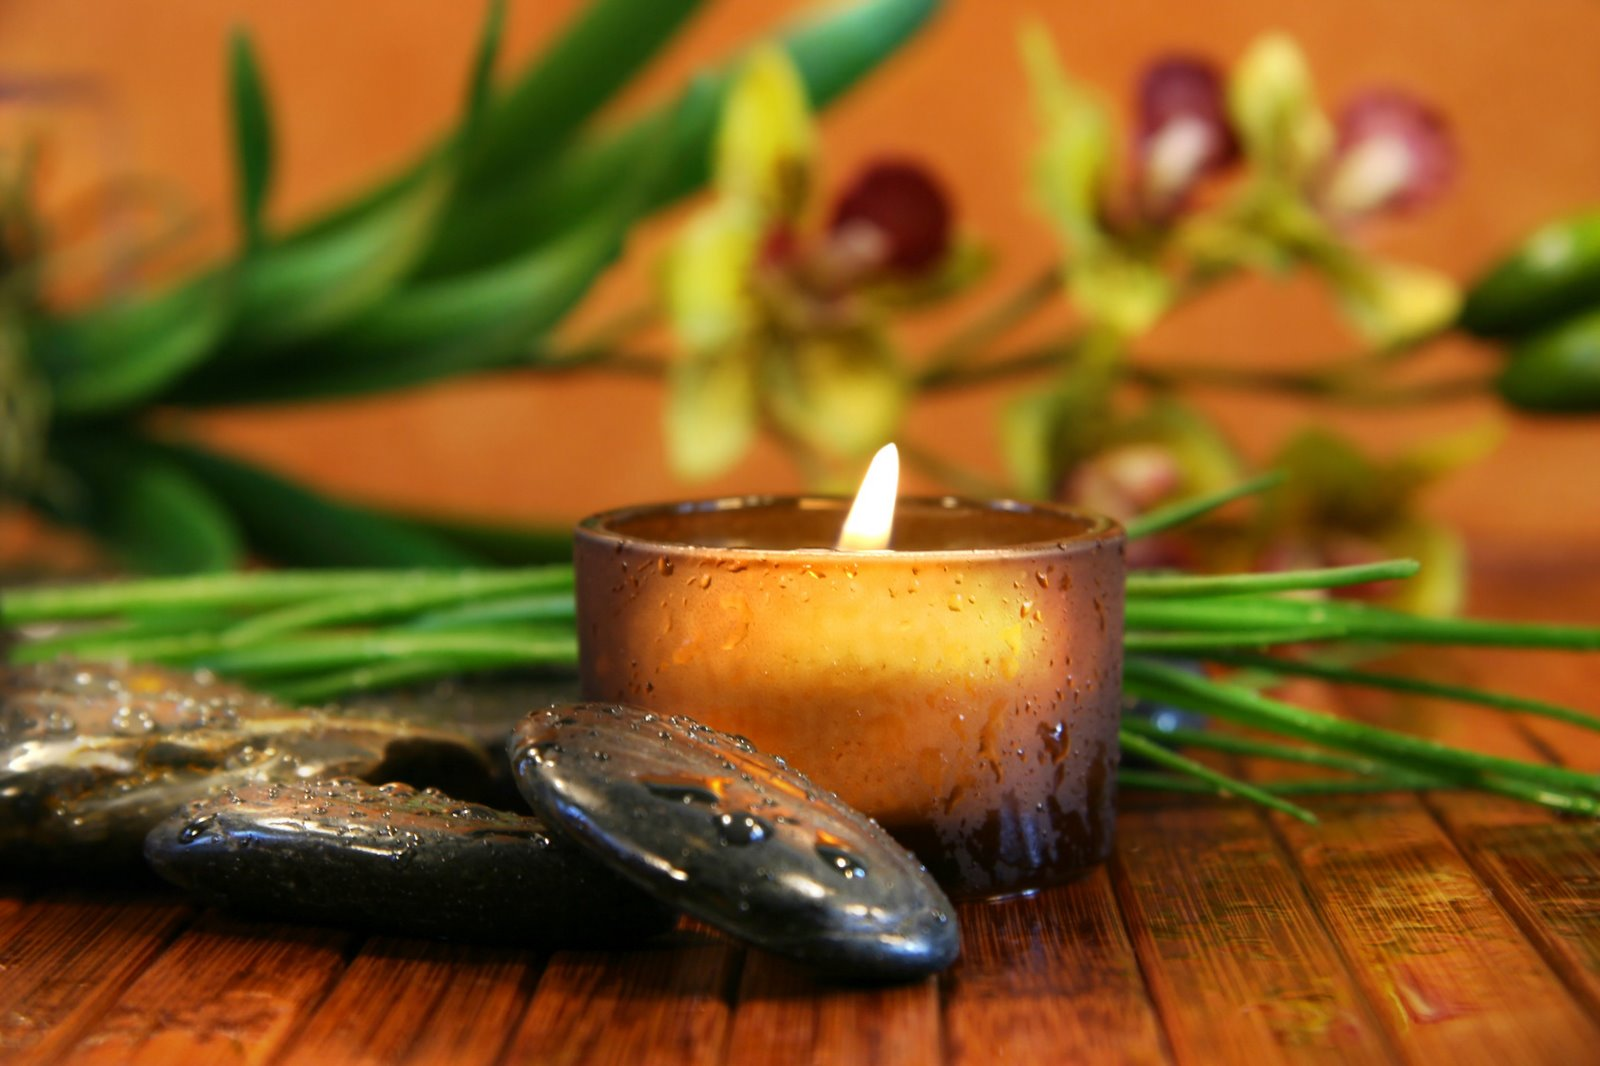 Amber candle and spa stones with orchid  on bamboo